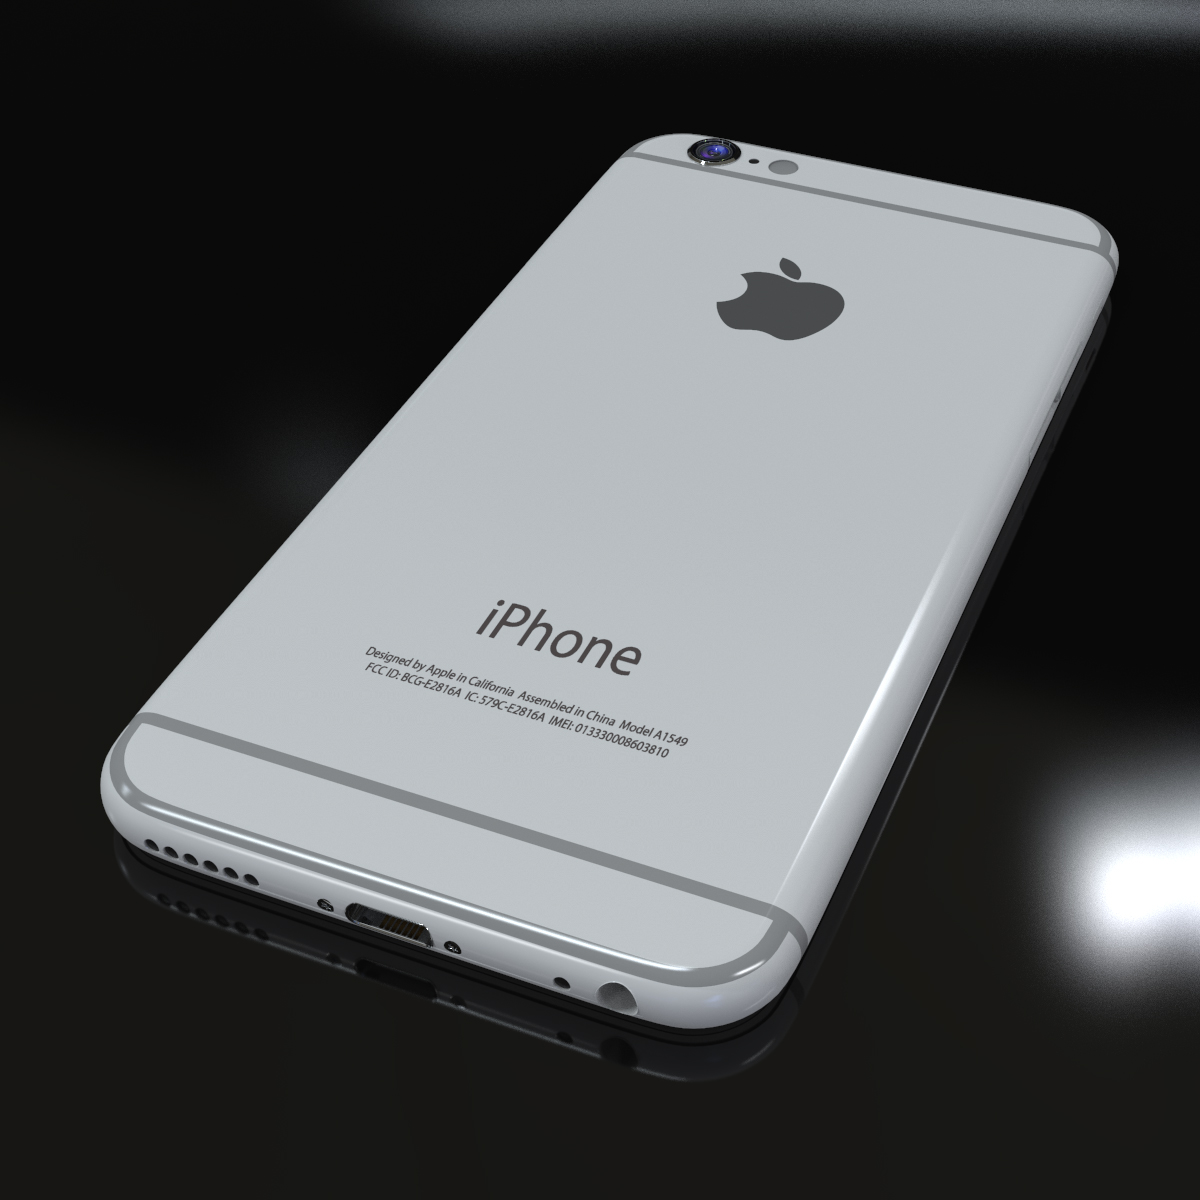 apple iphone 6s 3d model max fbx ma mb texture obj 278459